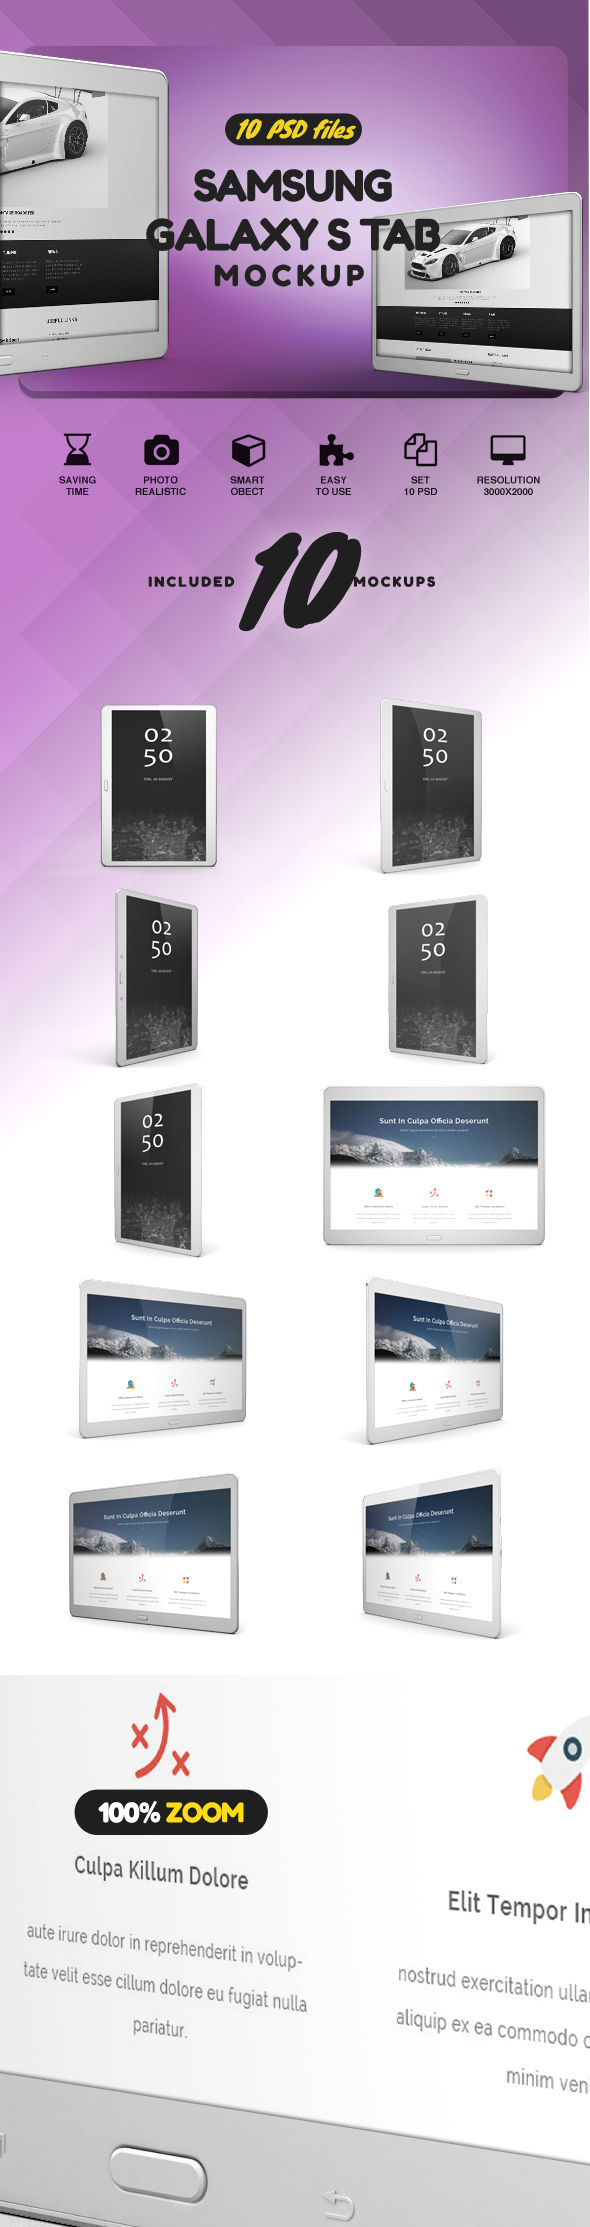 Download Website Mockup Free Psd Download Yellowimages